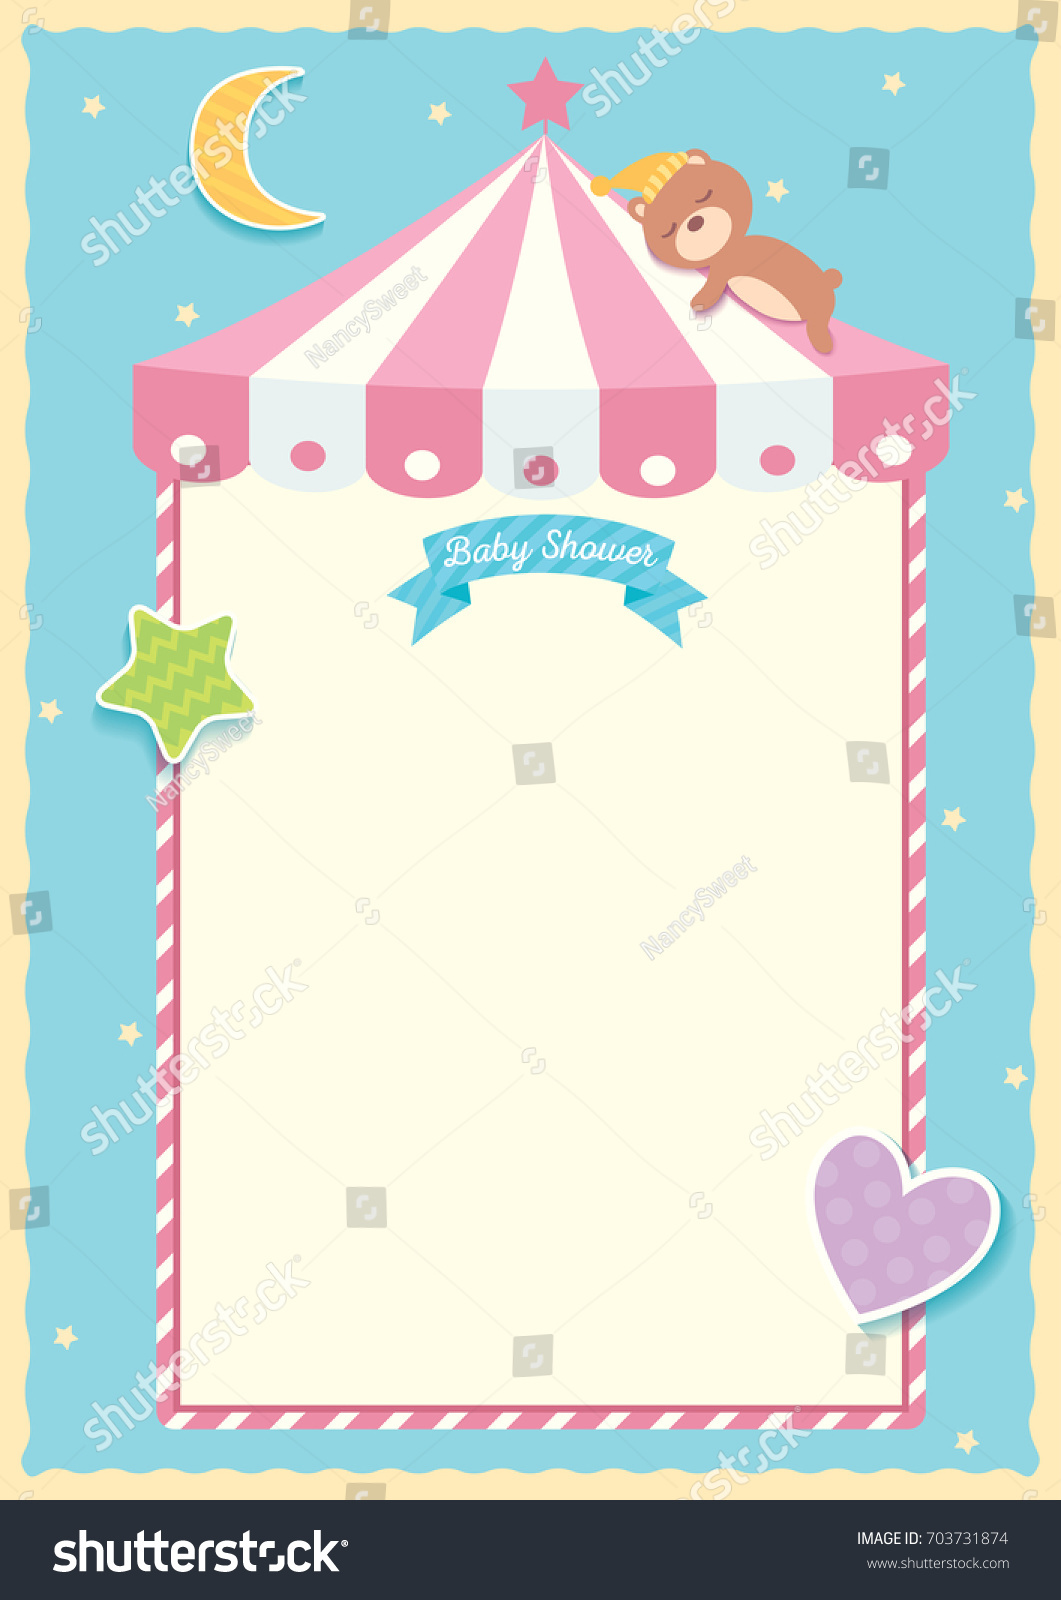 Illustration Vector Of Baby Shower Template Design With Bear Sleeping On  Roof Tent Moon, Star